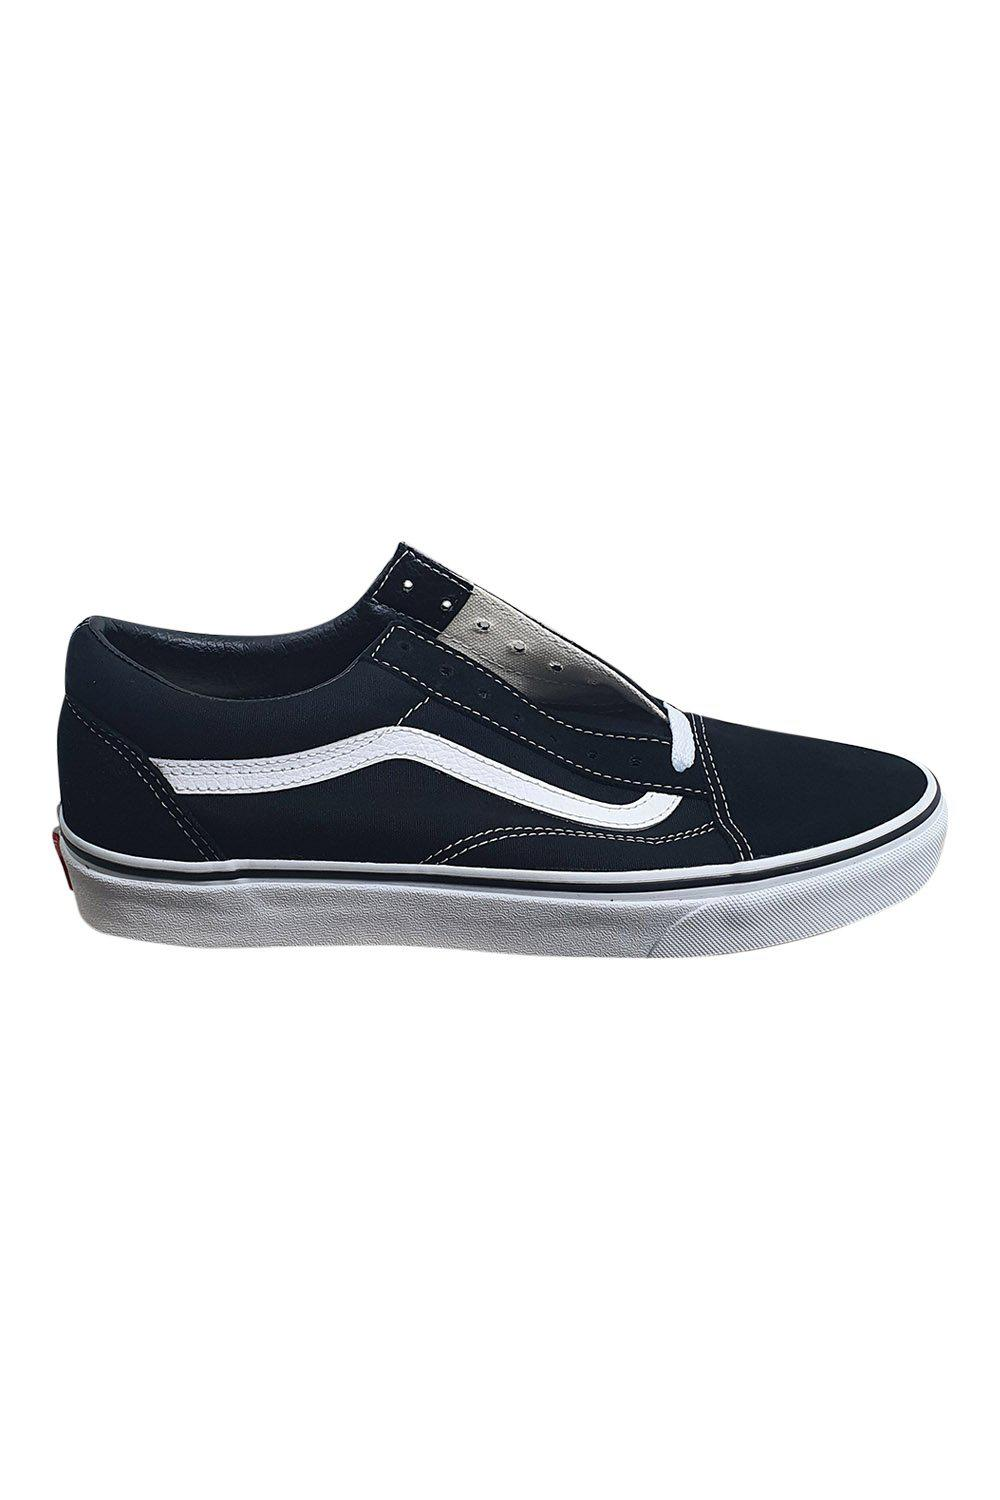 VANS Original Black & White Low Cut Old Skool Trainers (UK 9)-The Freperie